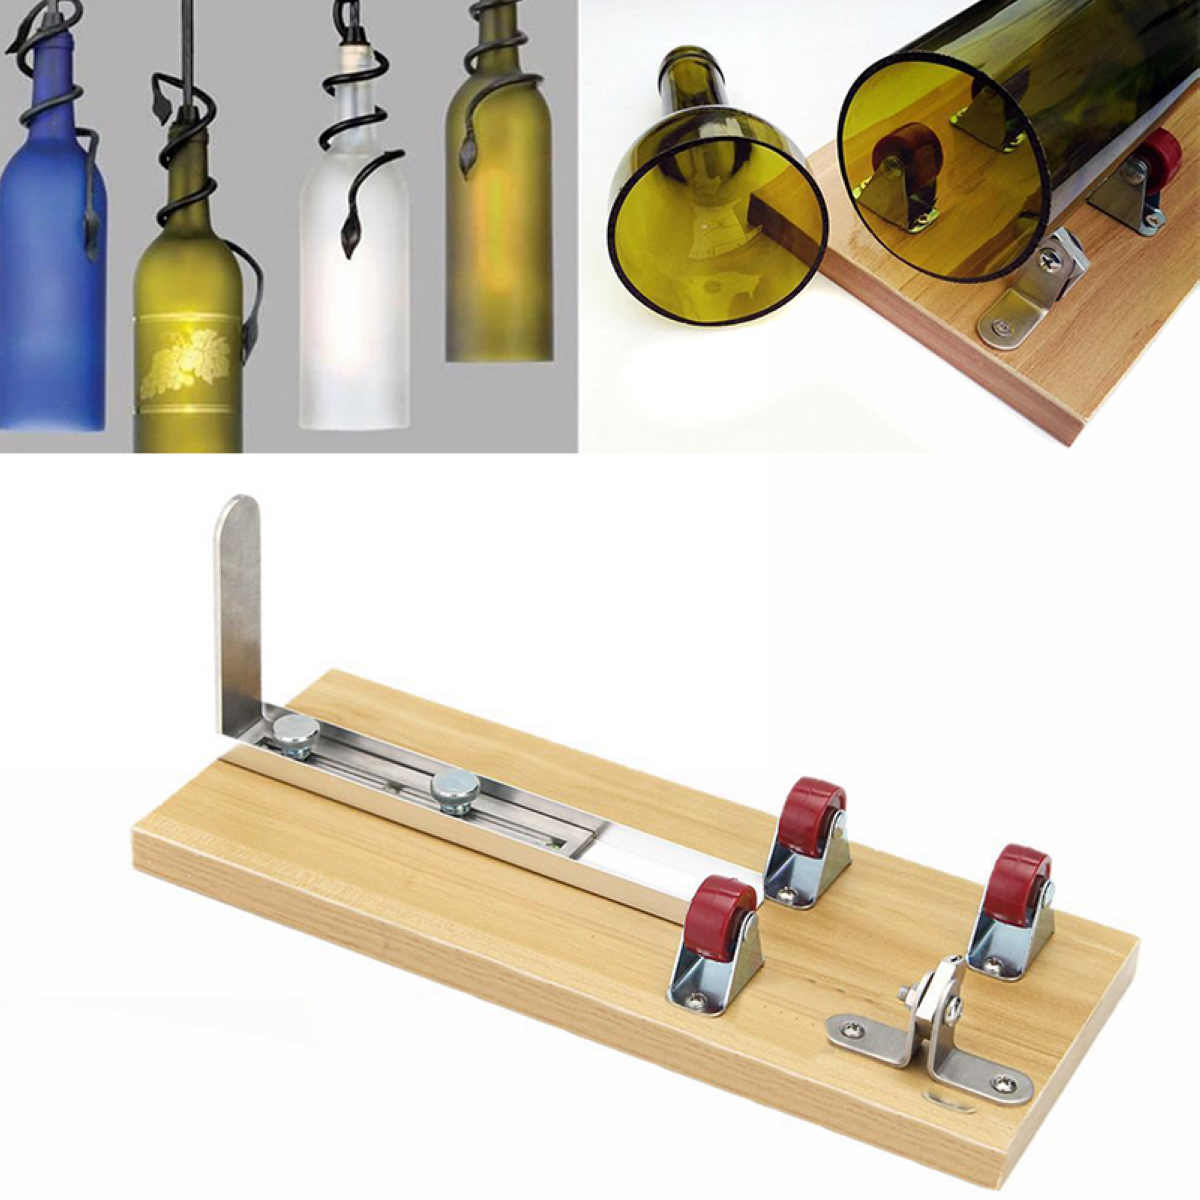 Hot Sale Glass Bottle Cutter Machine Mayitr Wine Bottle Jar Cutter Machine Kit Sculpture For Art Cutting Tool DIY Recycle best price mgehr1212 2 slot cutter external grooving tool holder turning tool no insert hot sale brand new